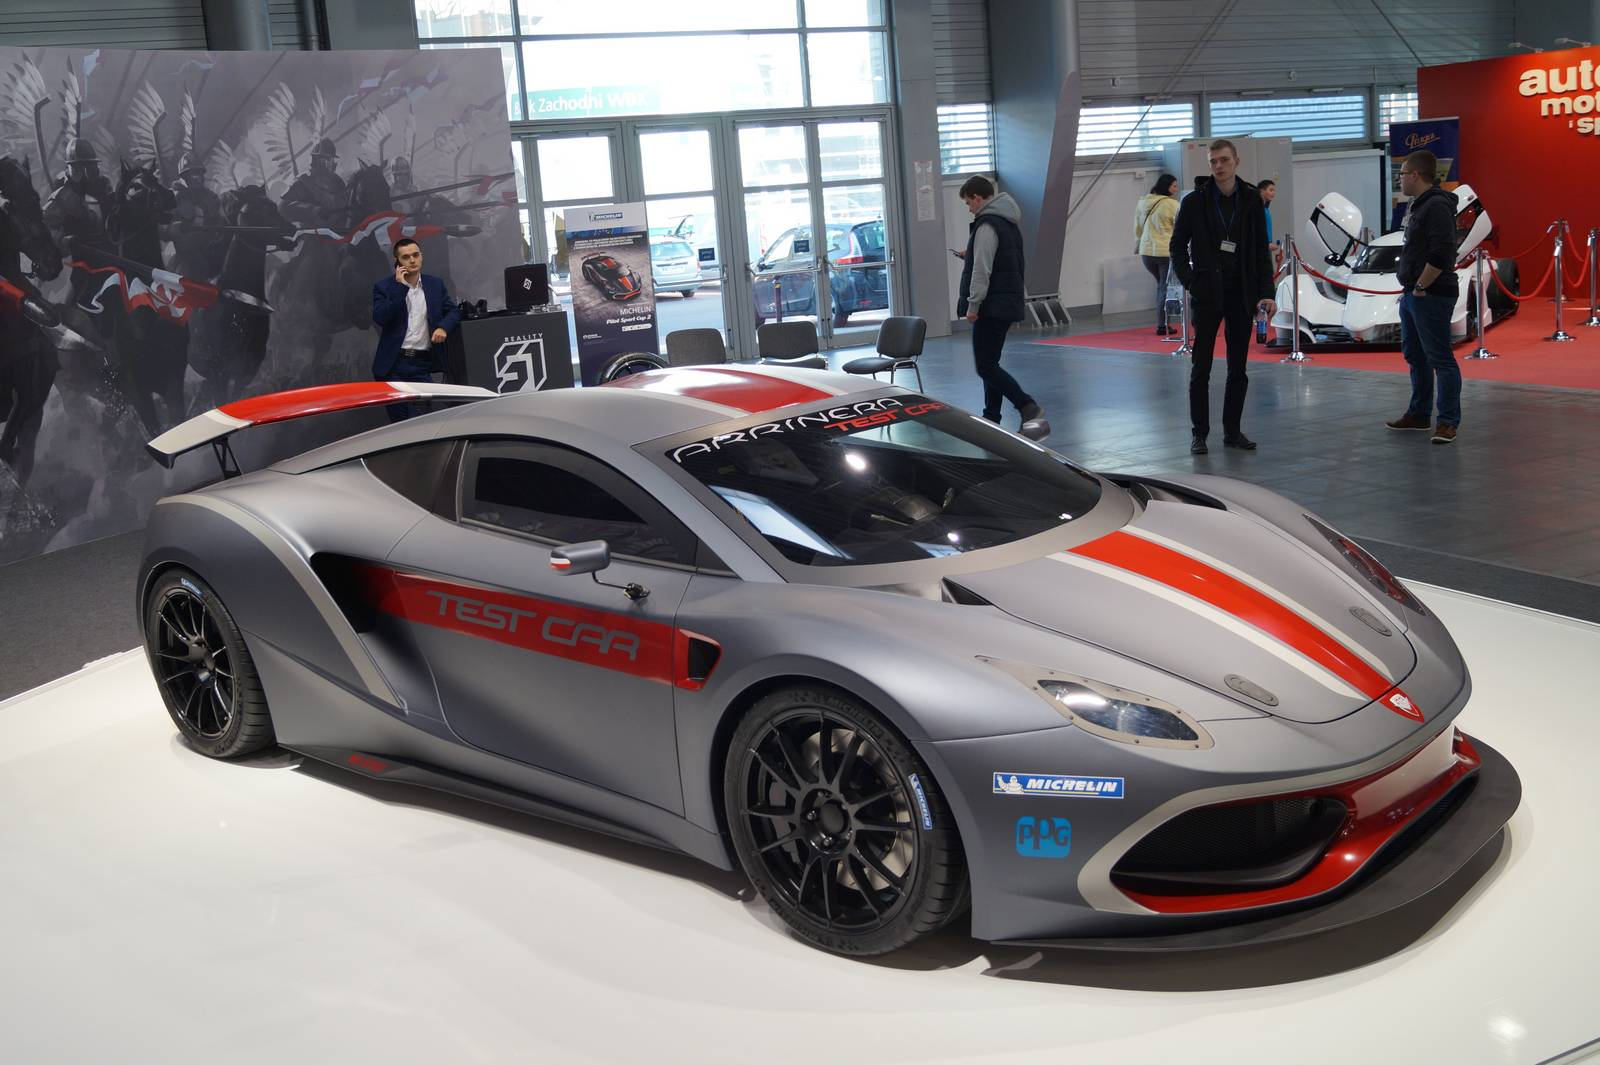 first polish supercar arrinera hussarya unveiled in poznan gtspirit. Black Bedroom Furniture Sets. Home Design Ideas